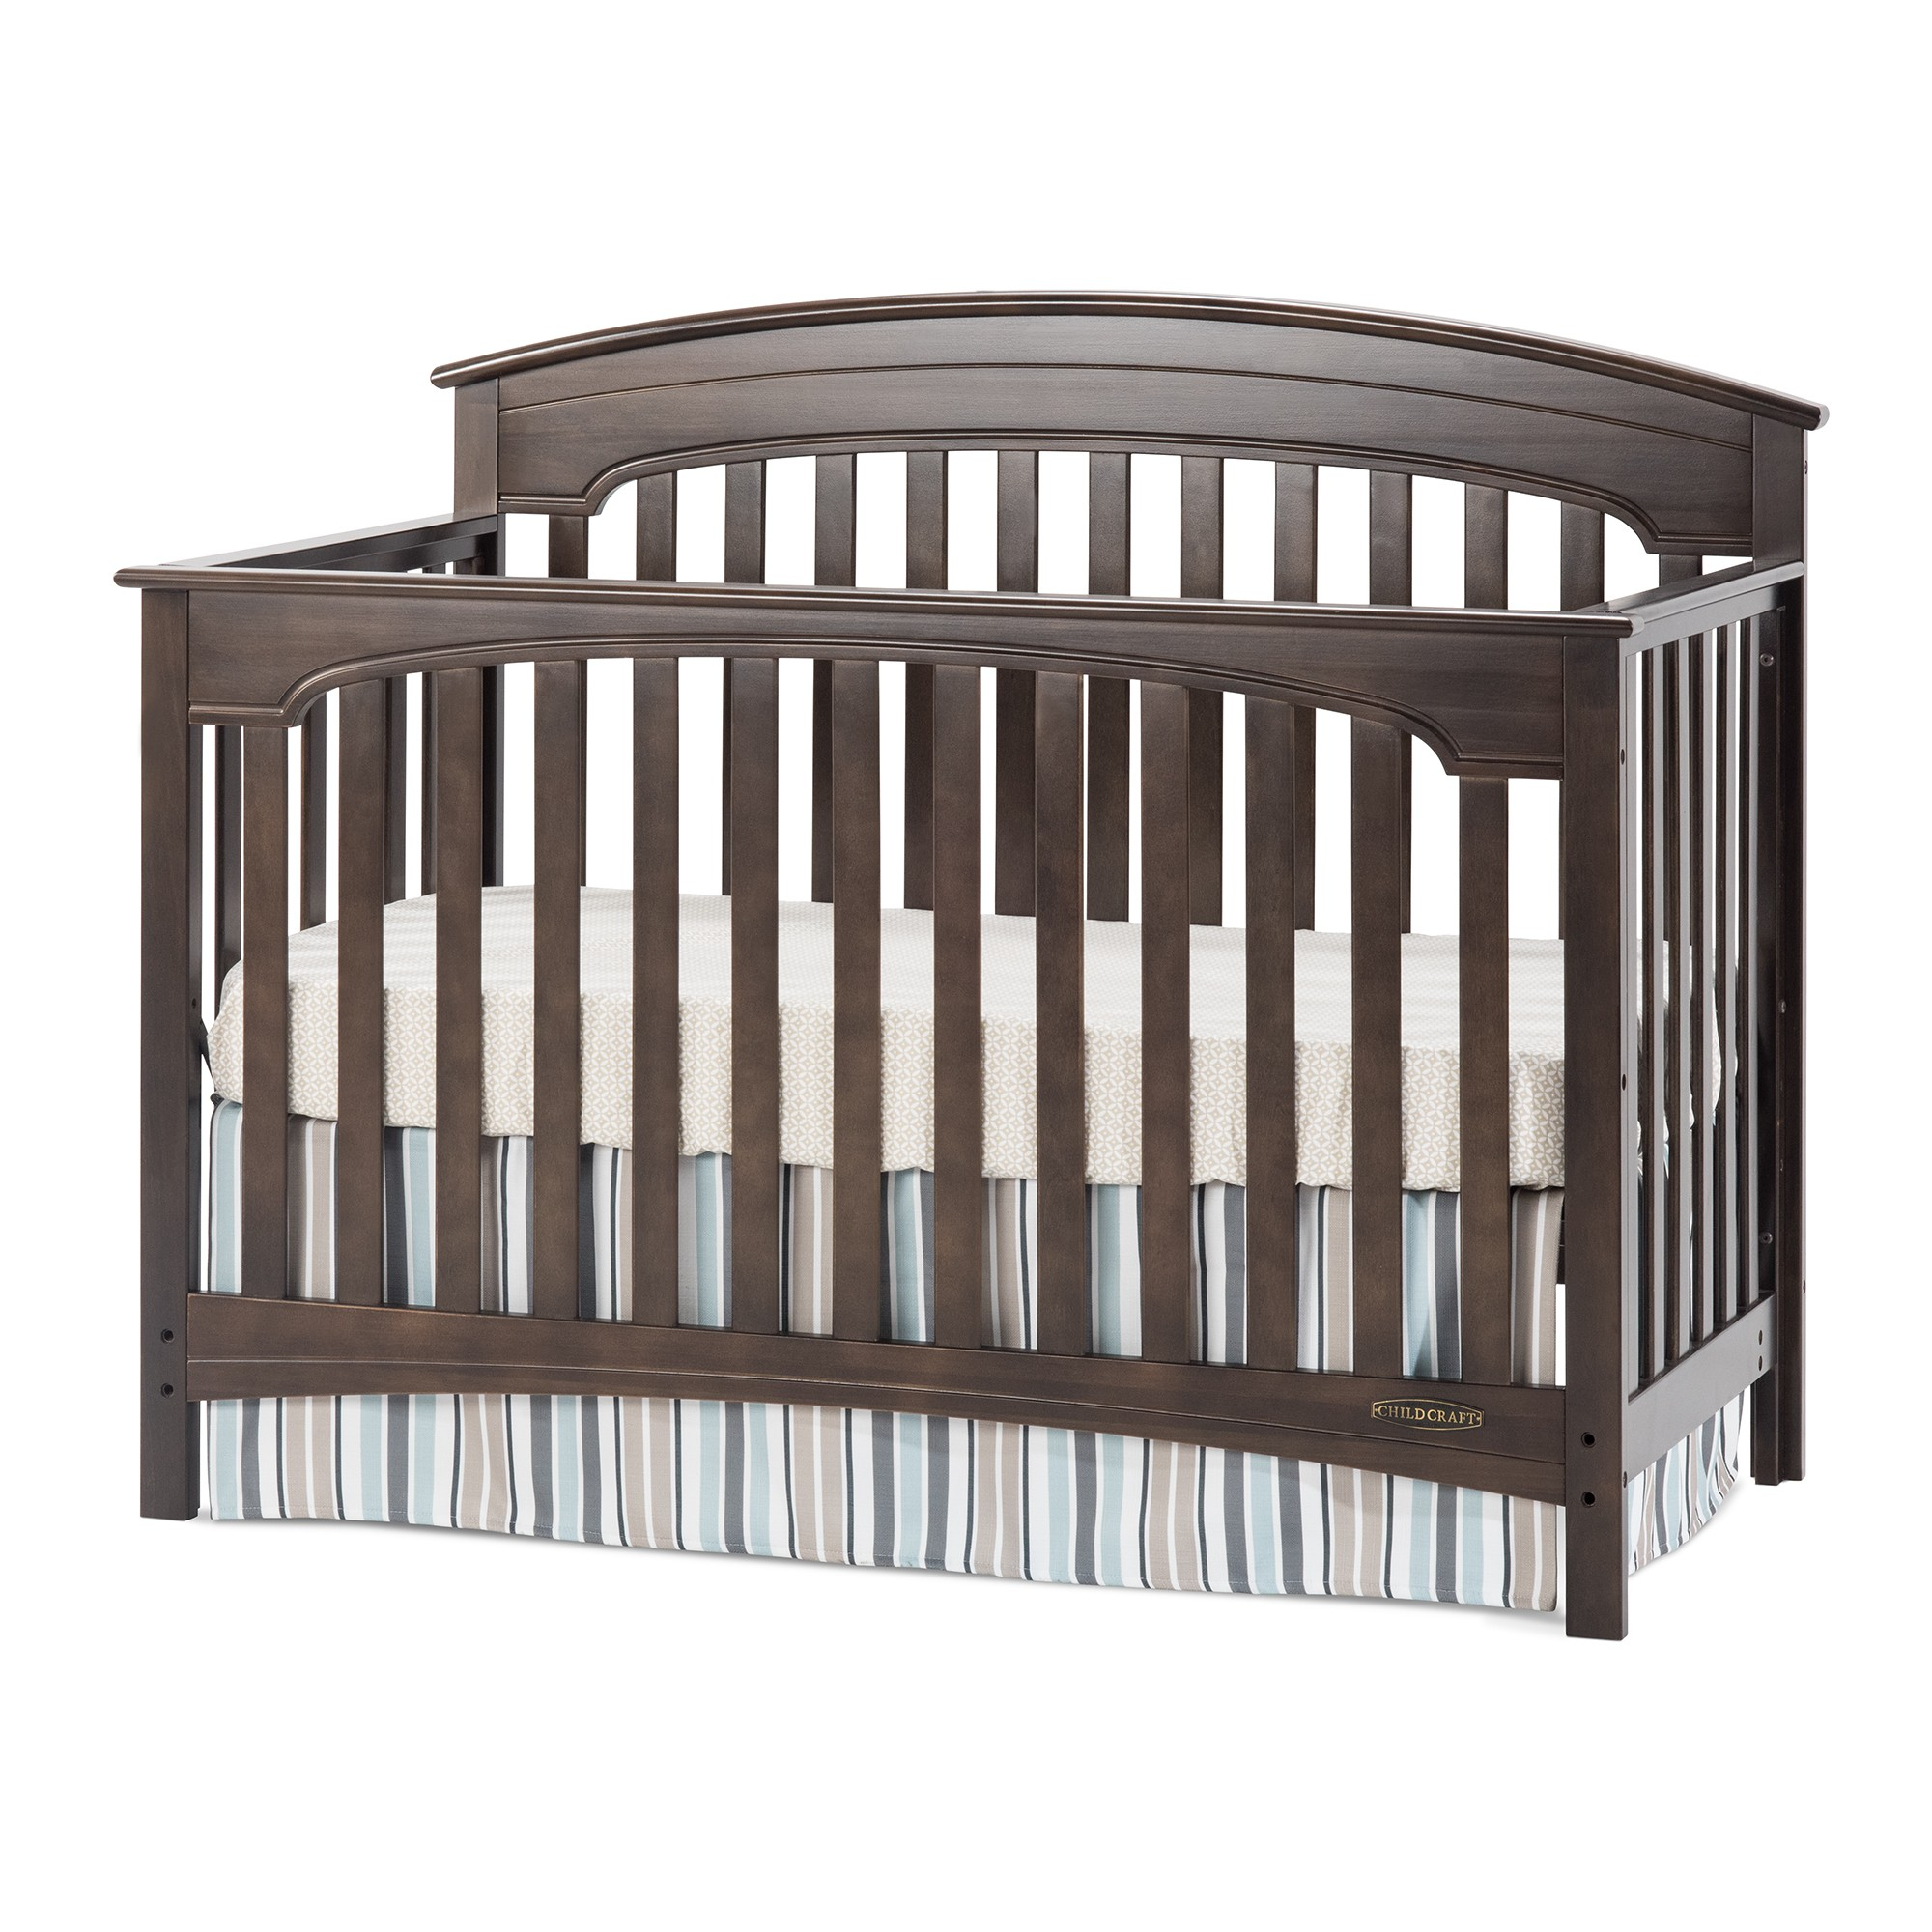 fisherprice you because crib the of london craft recalled logo picture that into cribs one should this child like i is take harmony